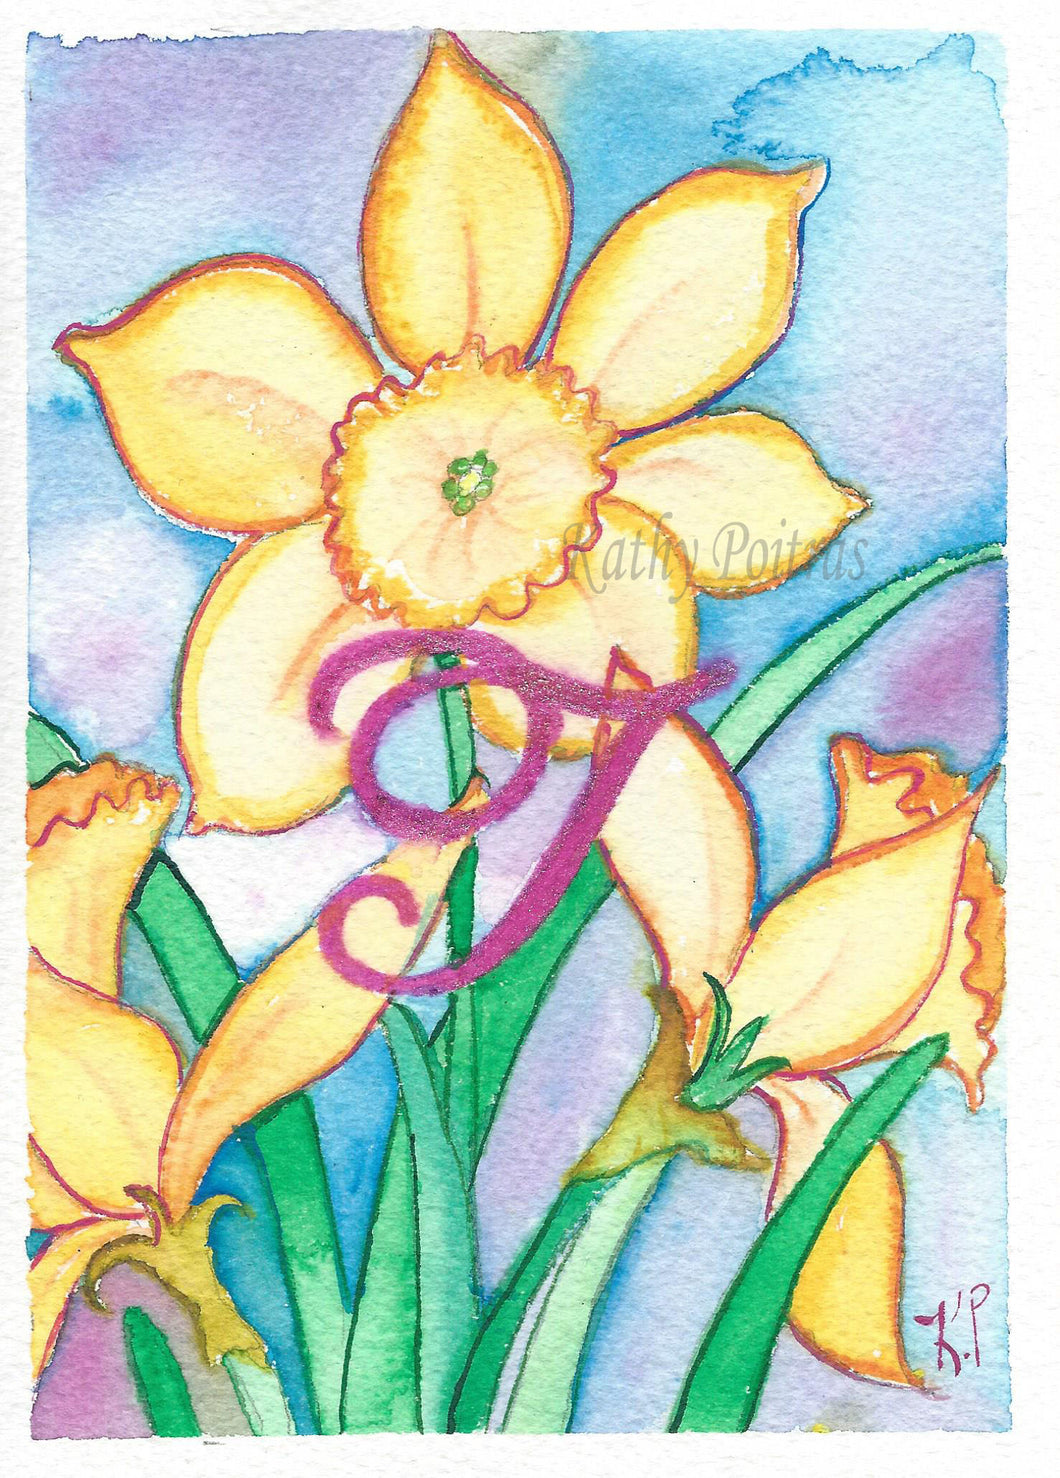 Greeting Card, Birthday Card, Mothers Day Card, watercolor and ink. Daffodils are the birth flower of the month for March. This flower of the month card is personalized with a fancy letter I.   by artist Kathy Poitras